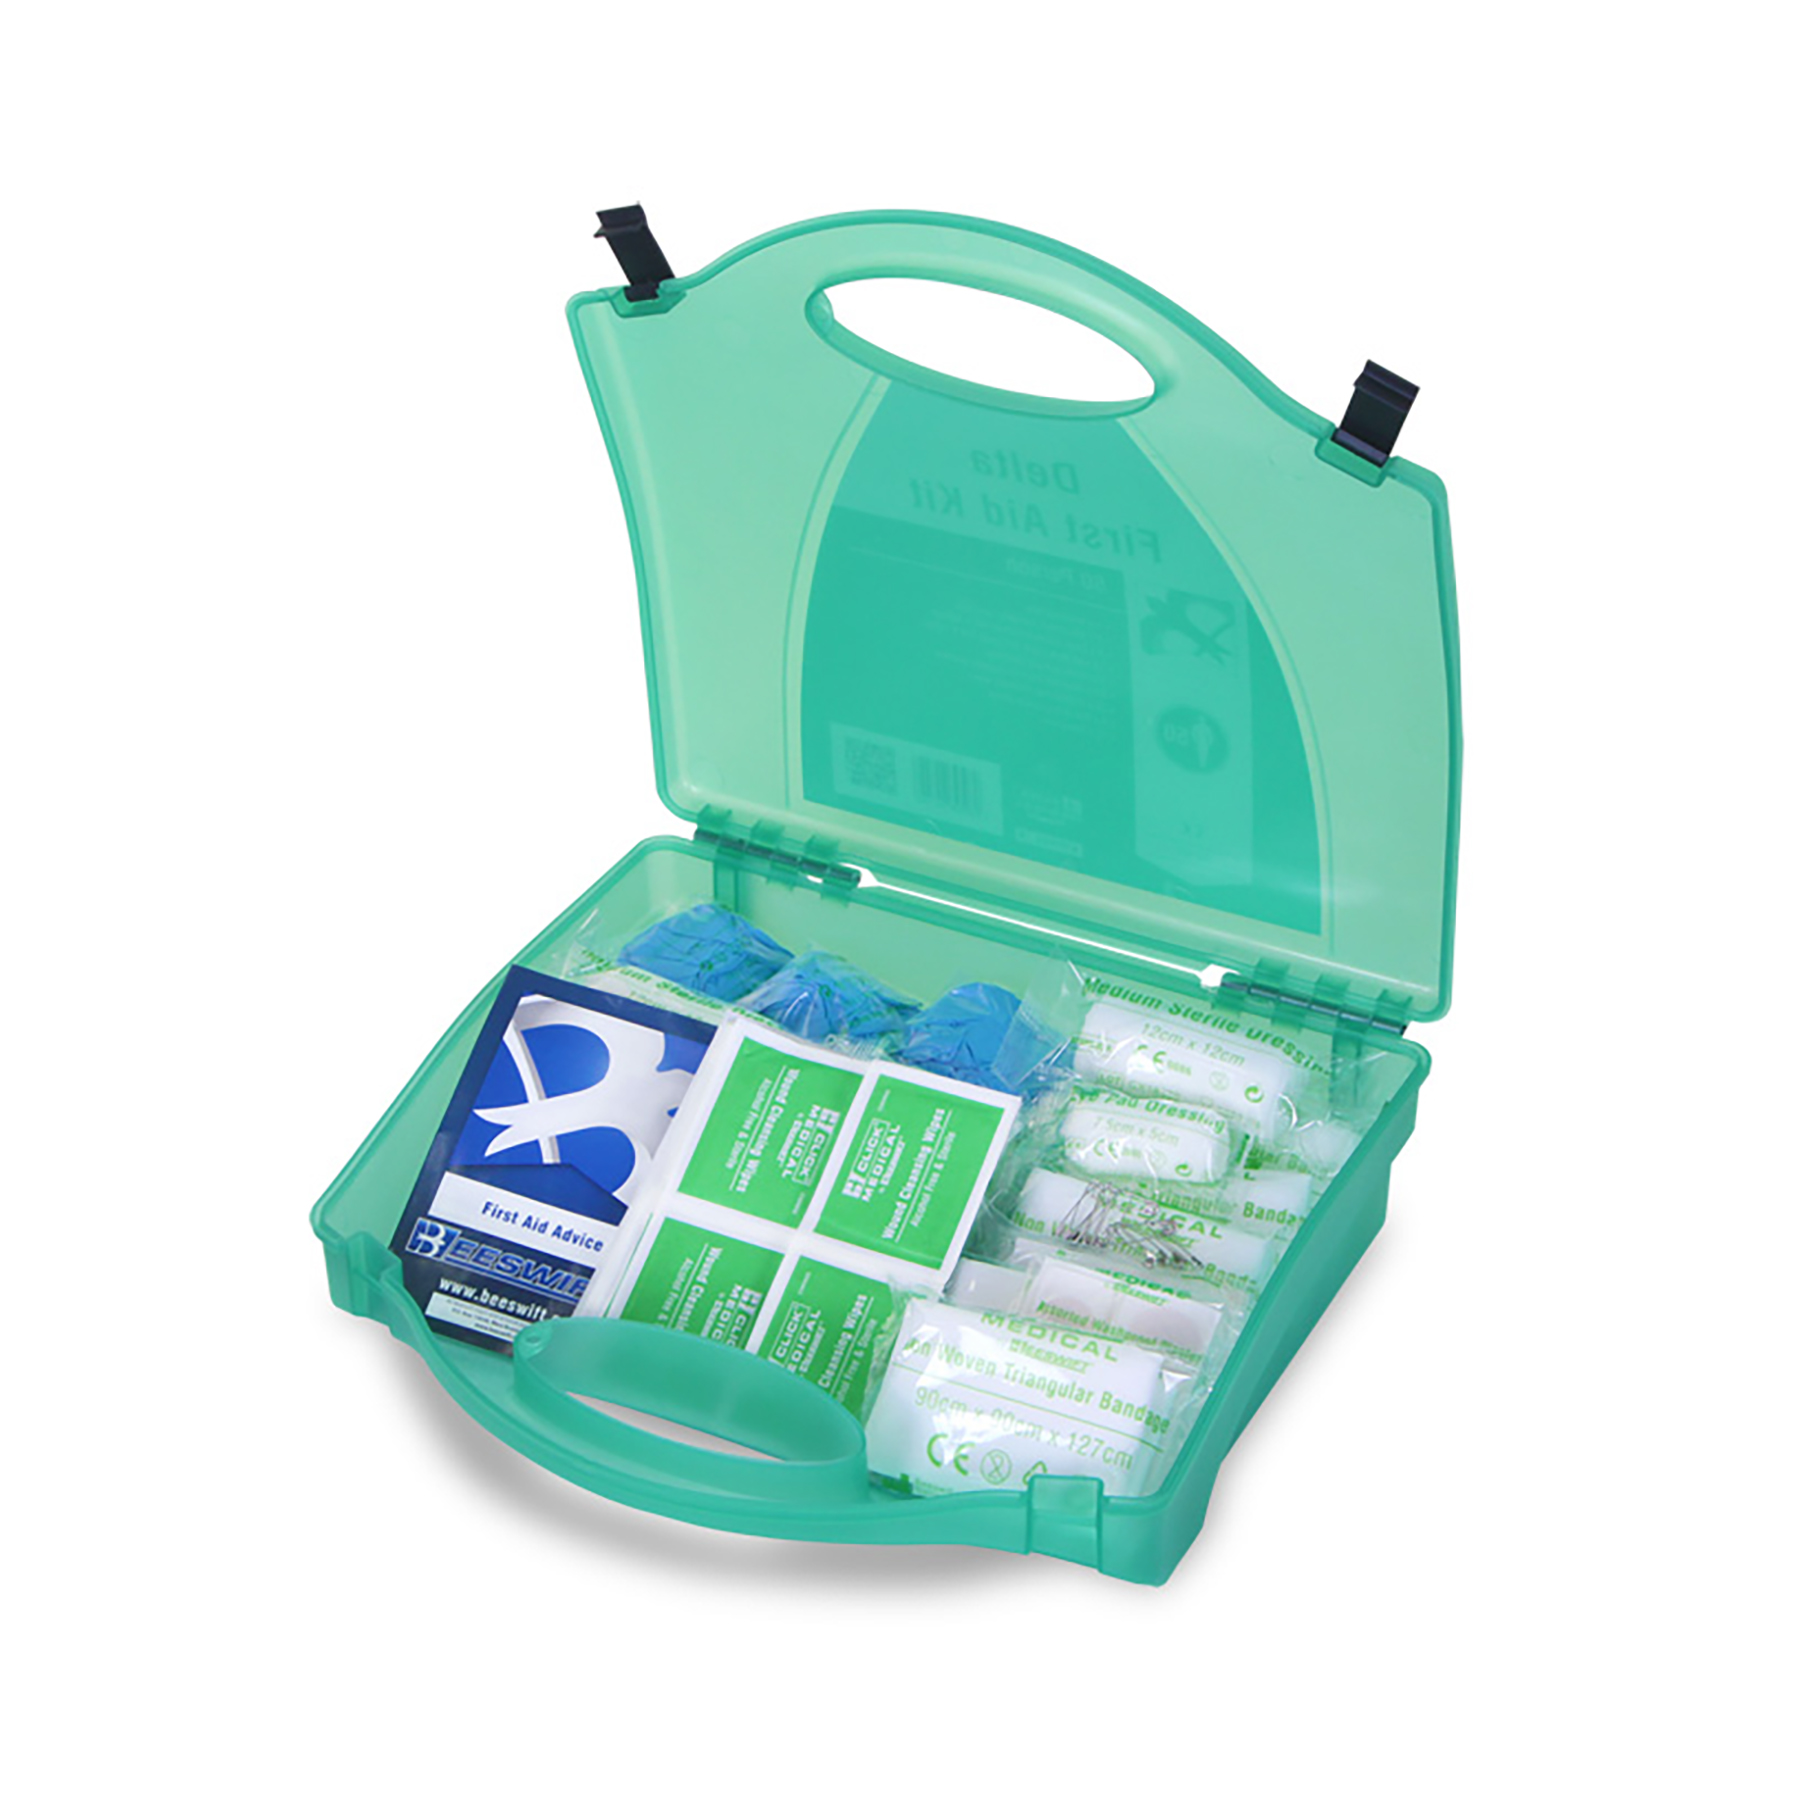 Equipment 5 Star Facilities First Aid Kit HS1 1-50 Person